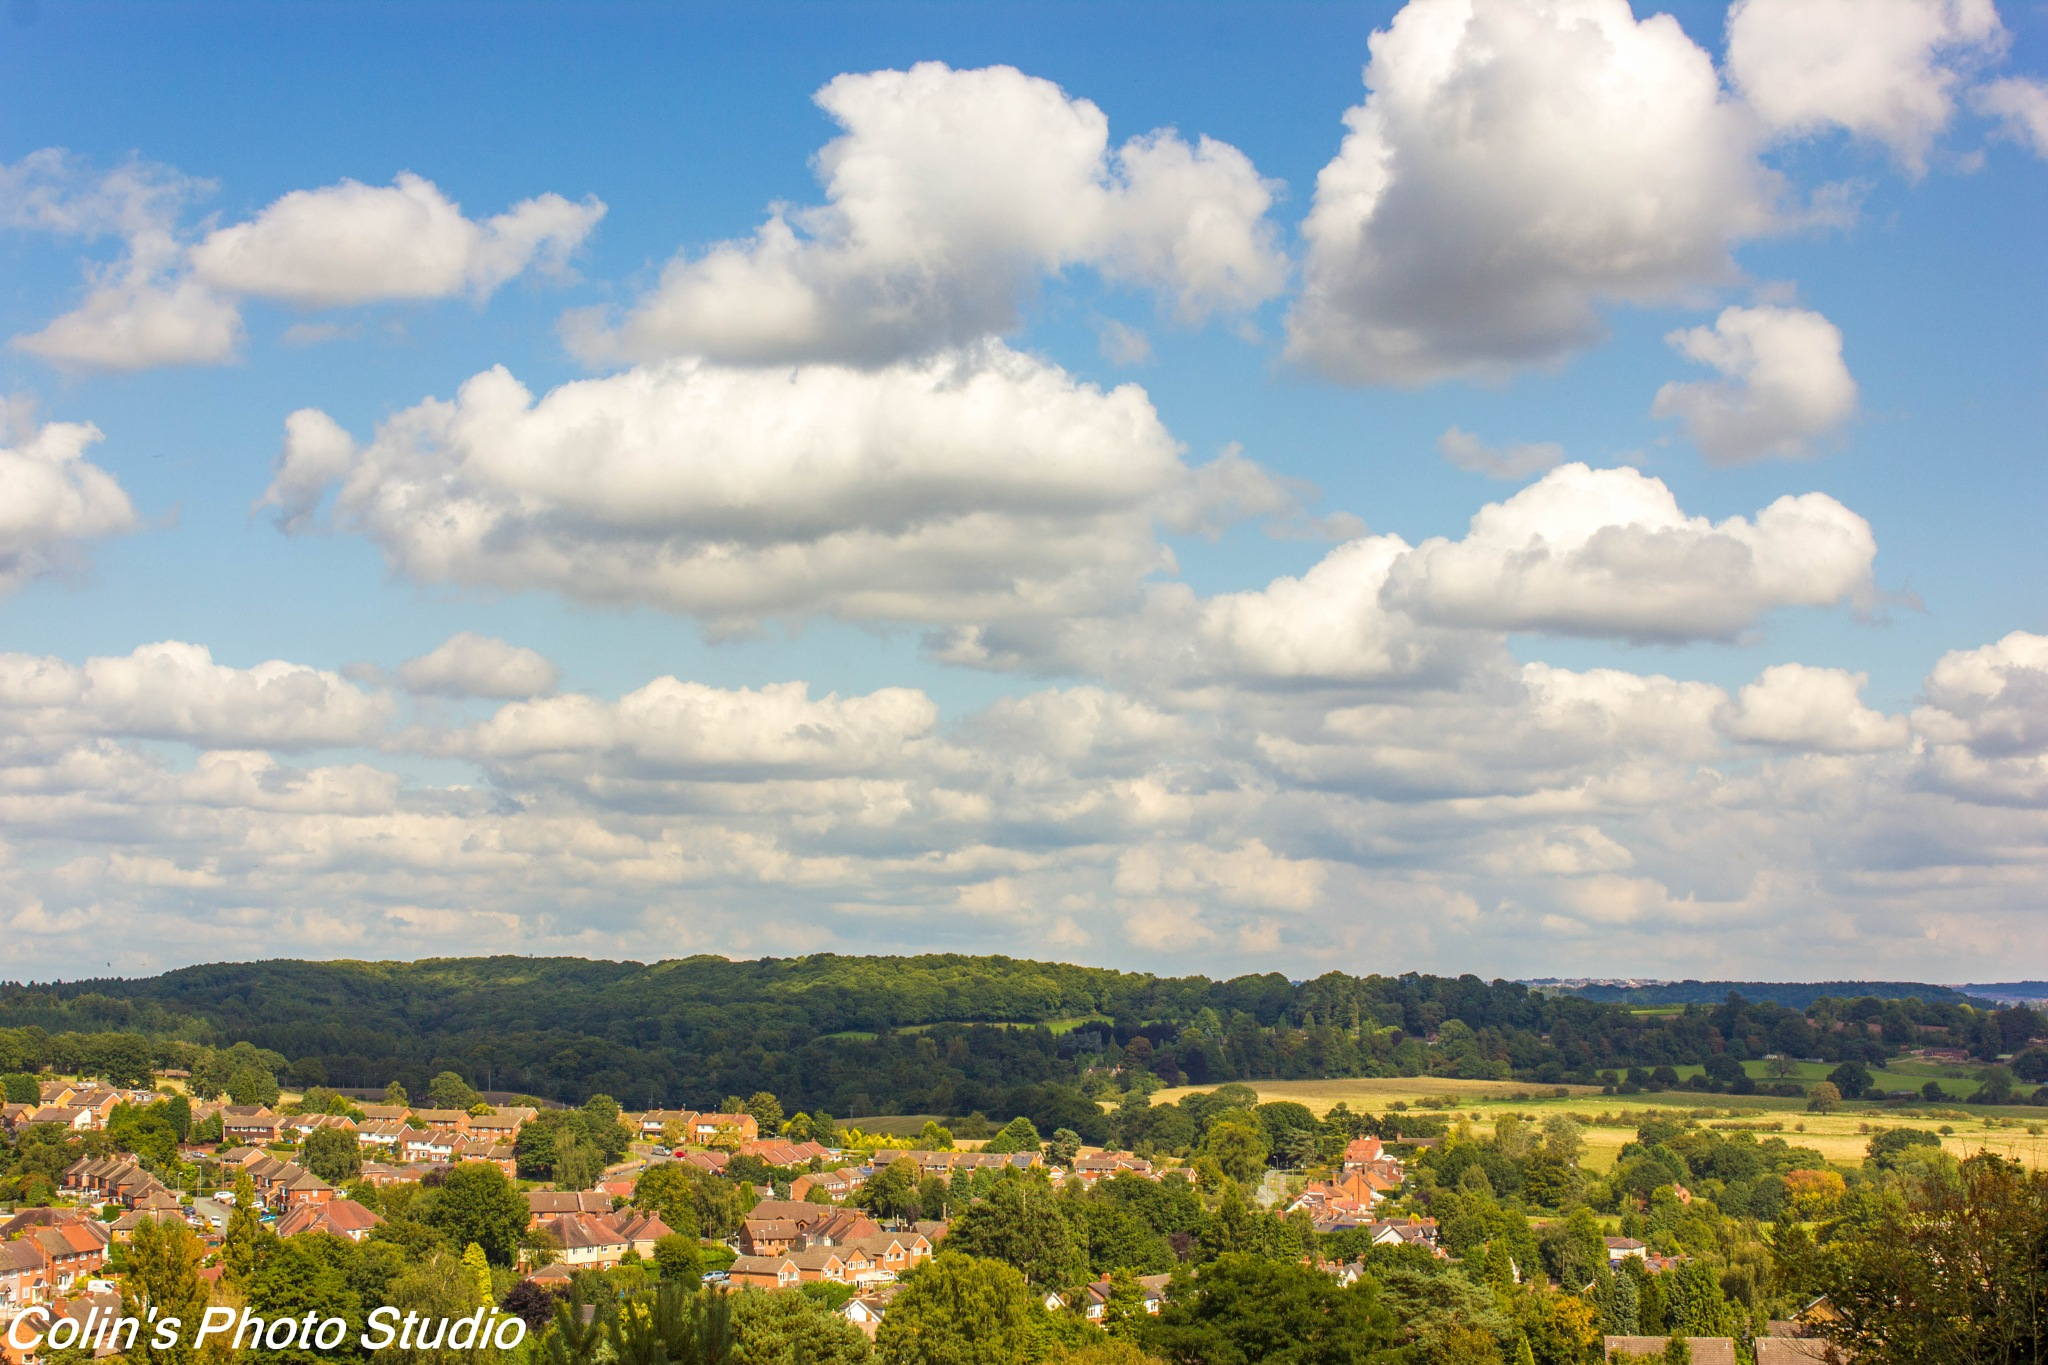 Looking over Kinver by Colin